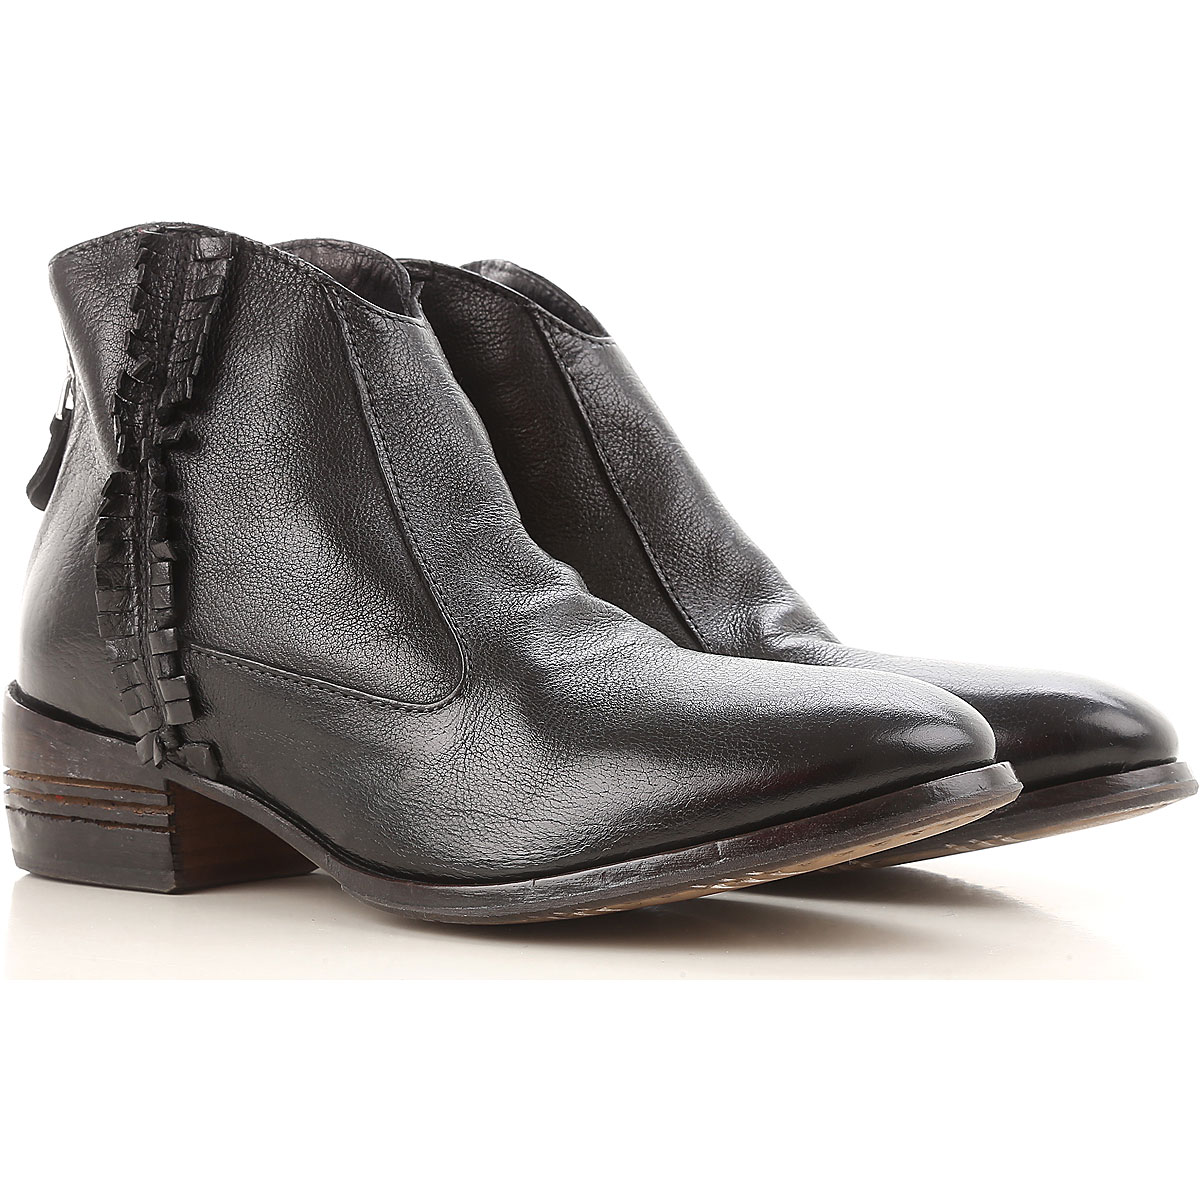 Image of Moma Boots for Women, Booties, Black, Leather, 2017, 10 6 7 8